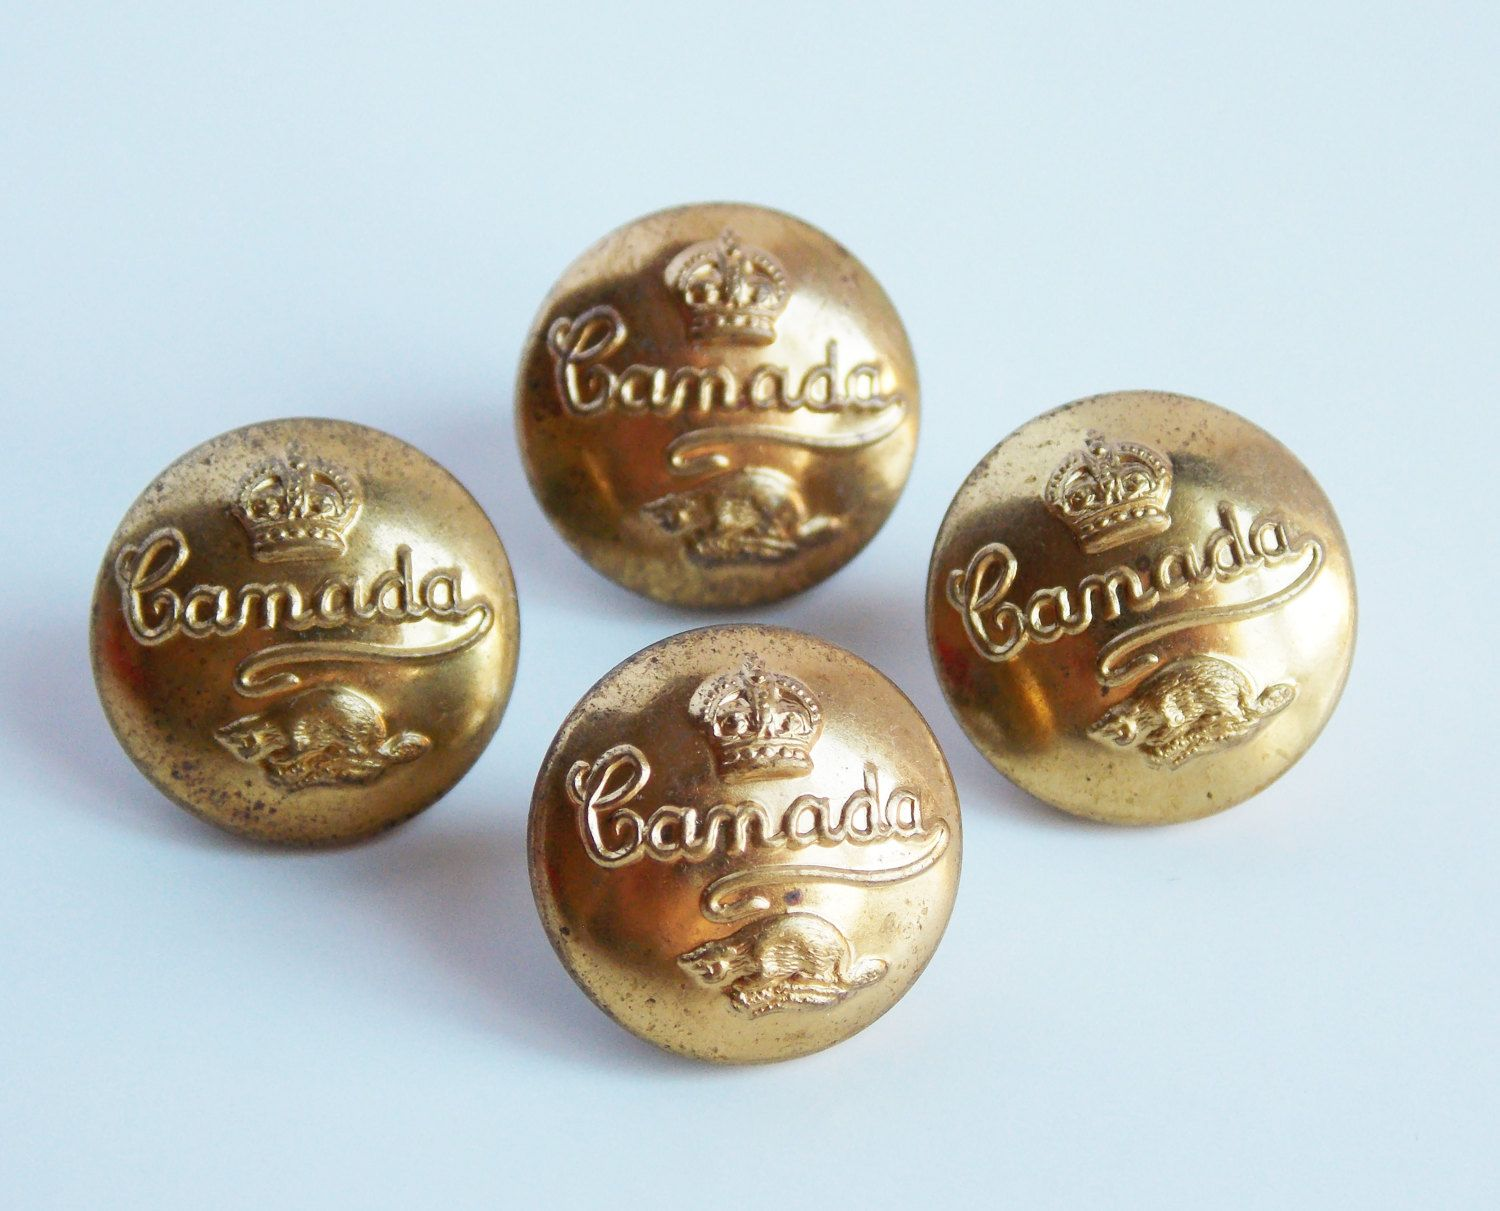 4 Vintage brass buttons, Canada military, crown and beaver